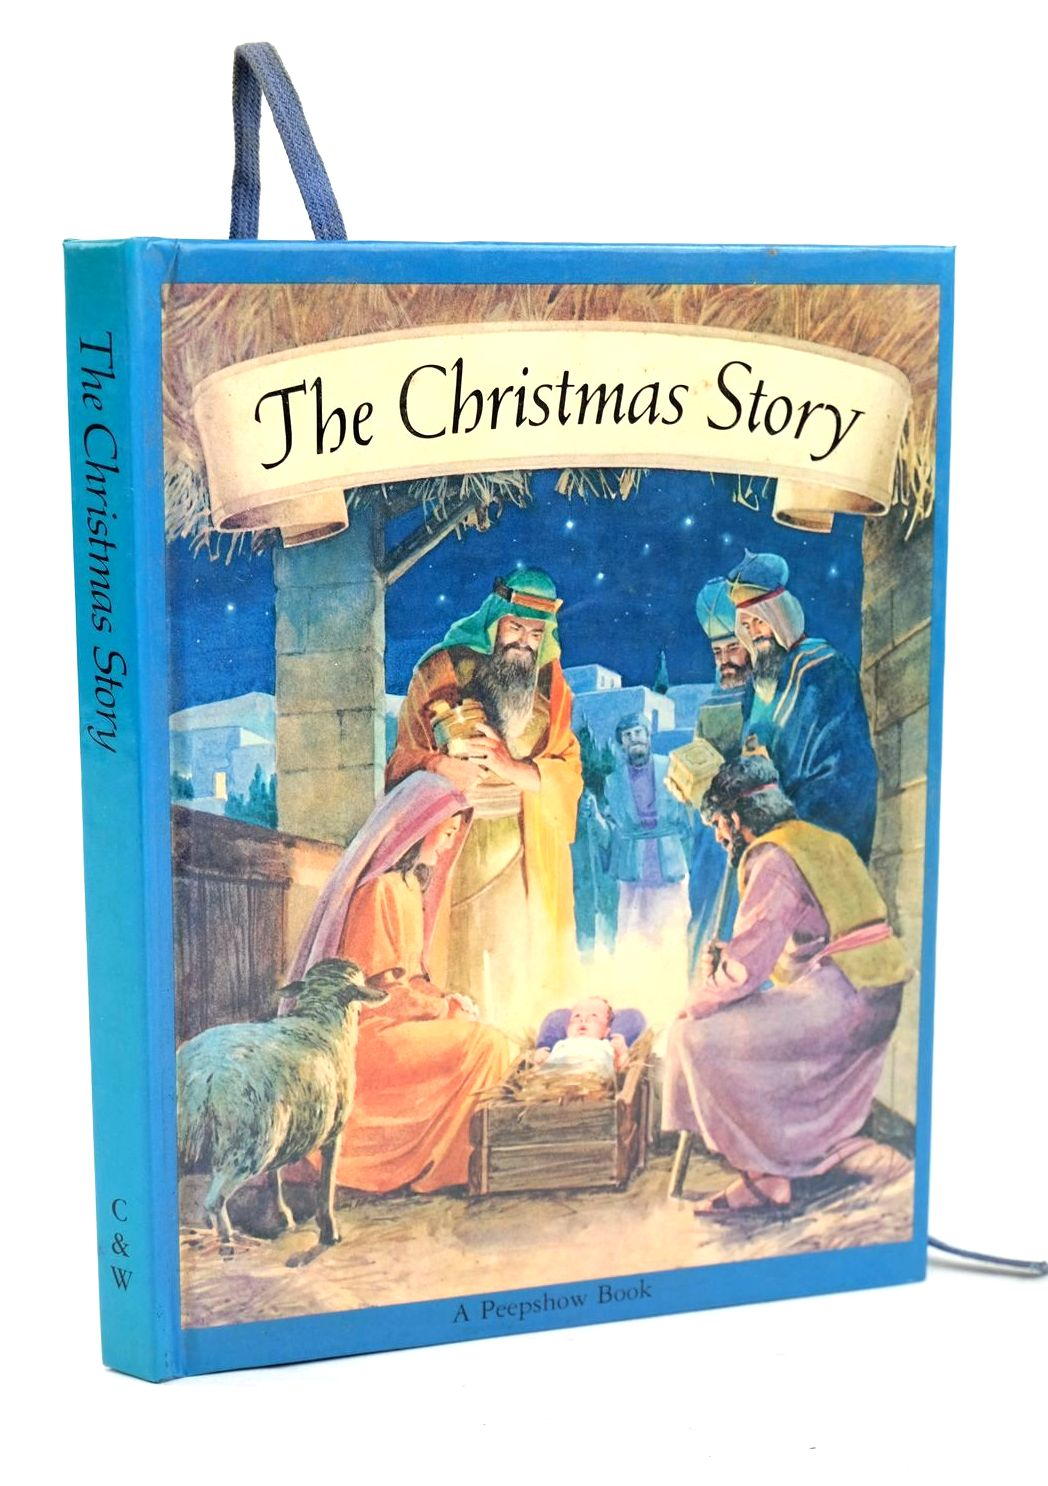 Photo of THE CHRISTMAS STORY illustrated by Svensson, Borje published by Chatto & Windus (STOCK CODE: 1319598)  for sale by Stella & Rose's Books